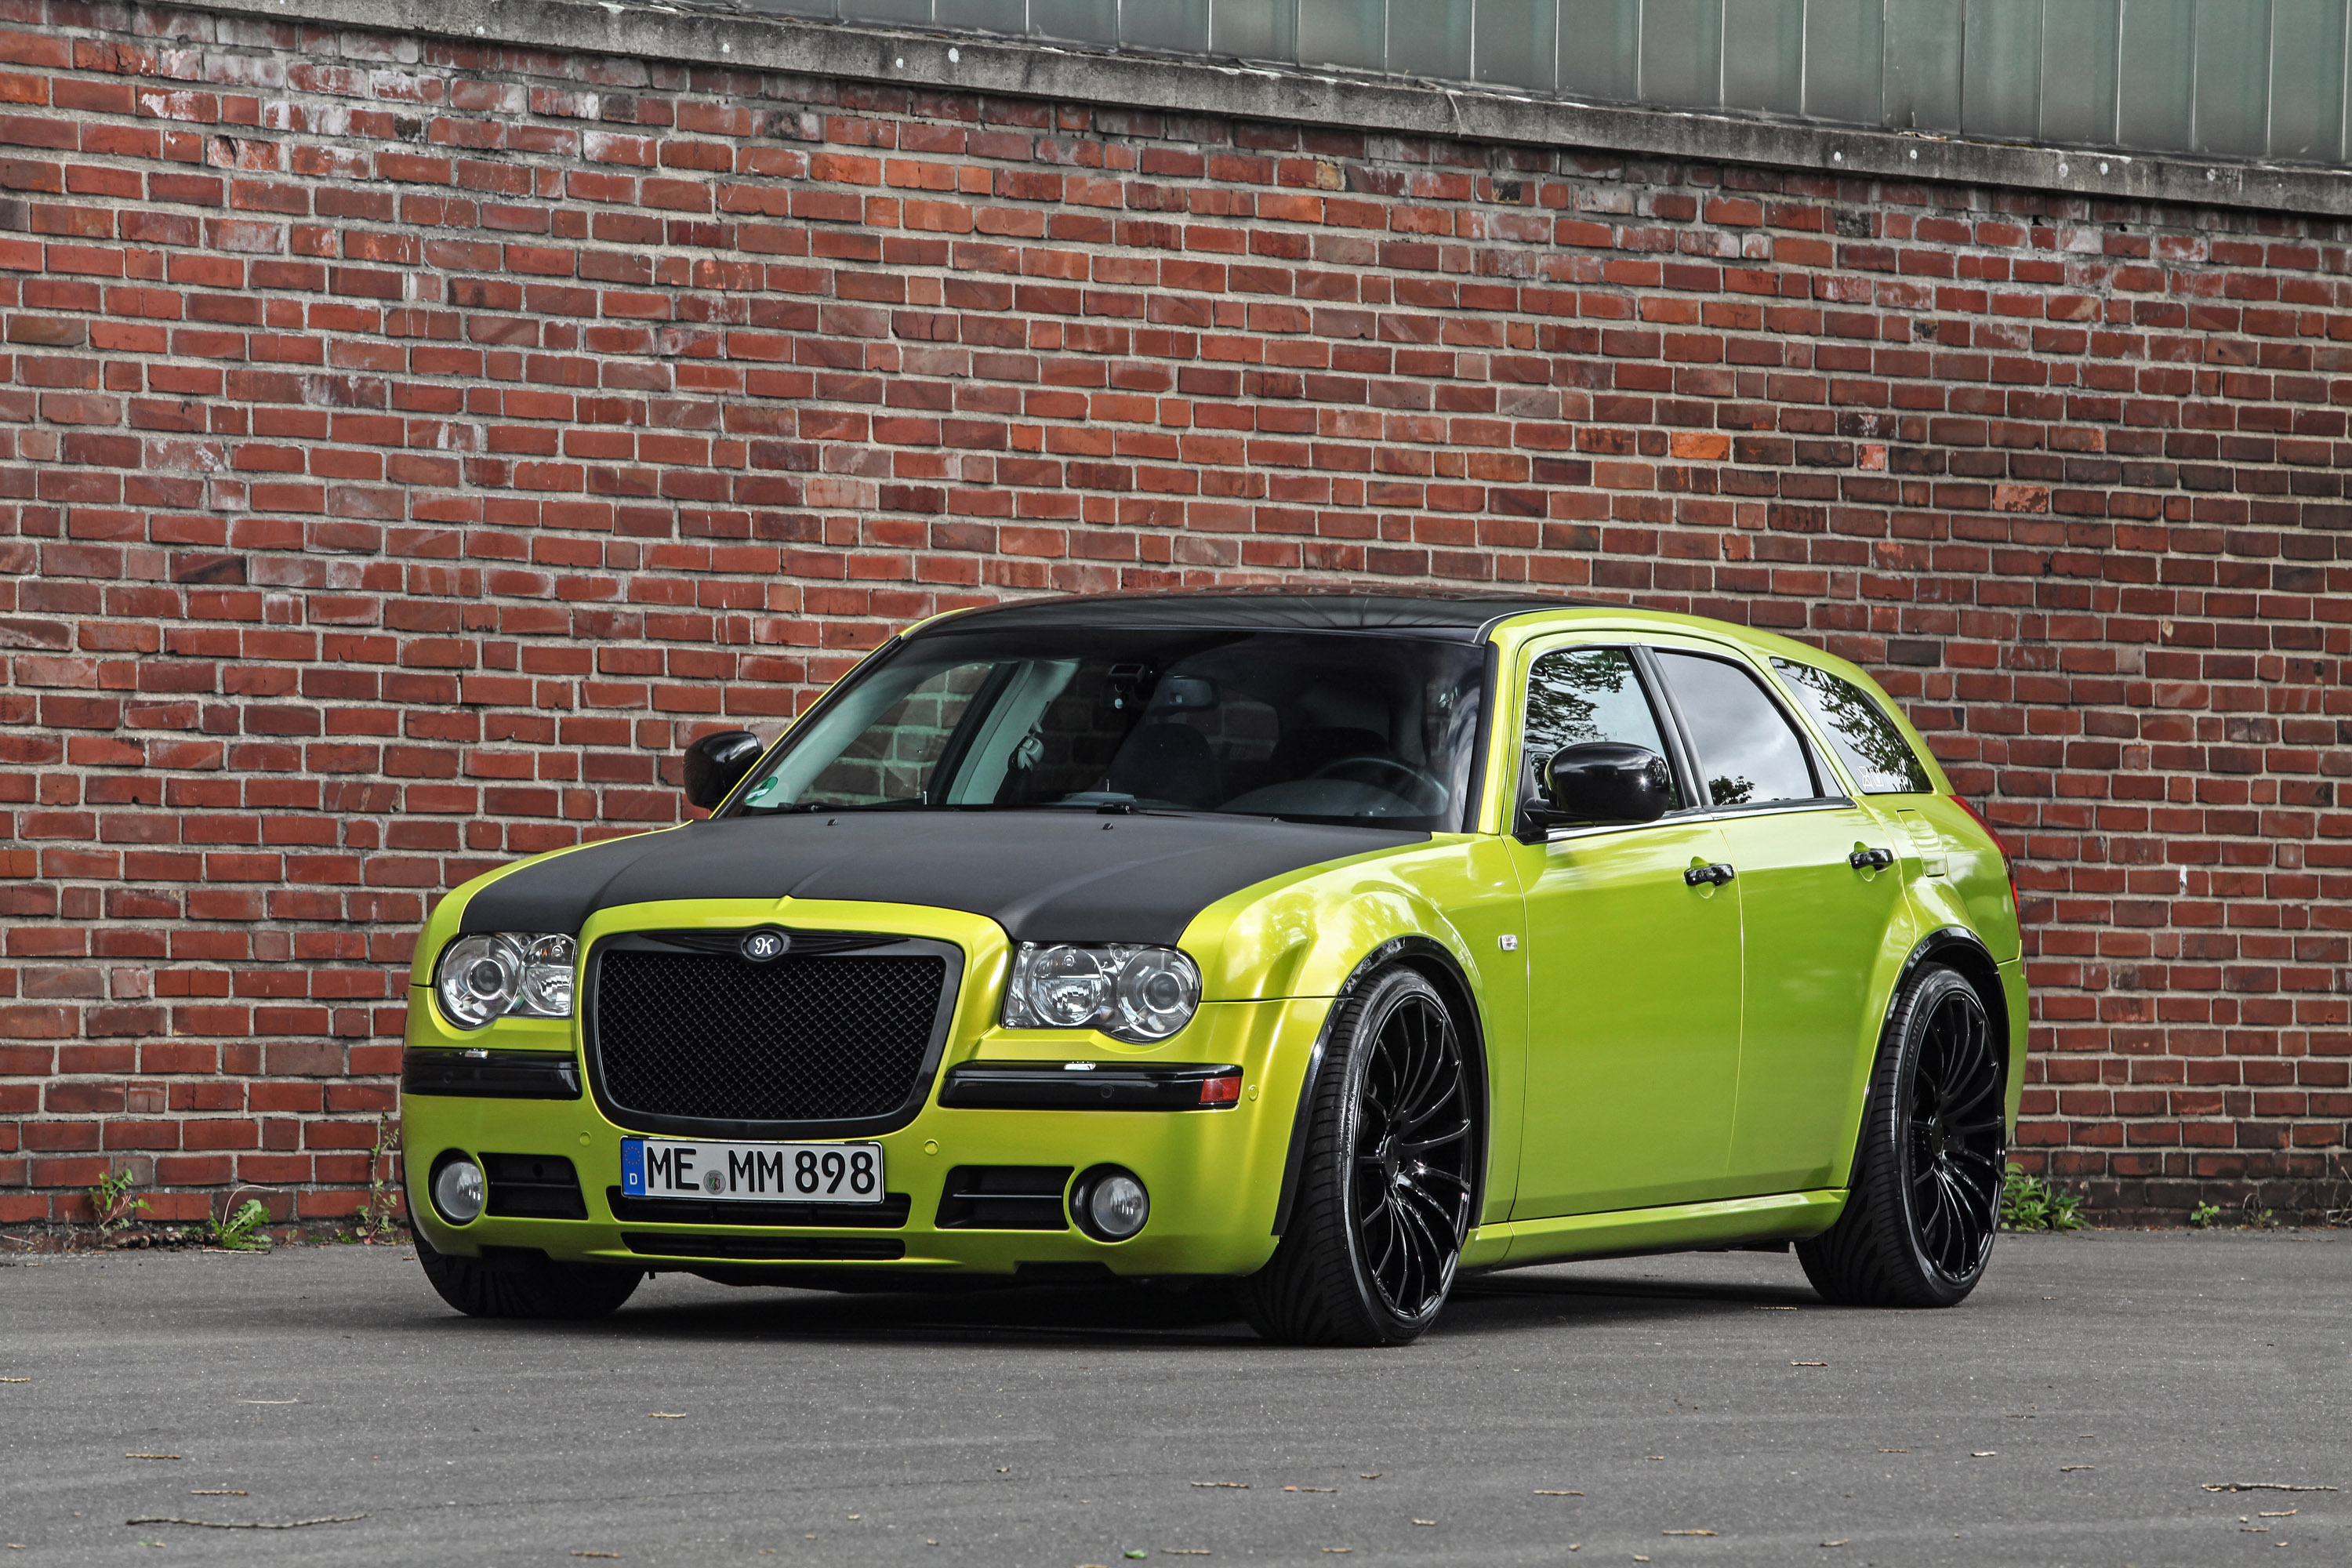 2015 hplusb chrysler 300c crd touring hd pictures for Chrysler 300c crd